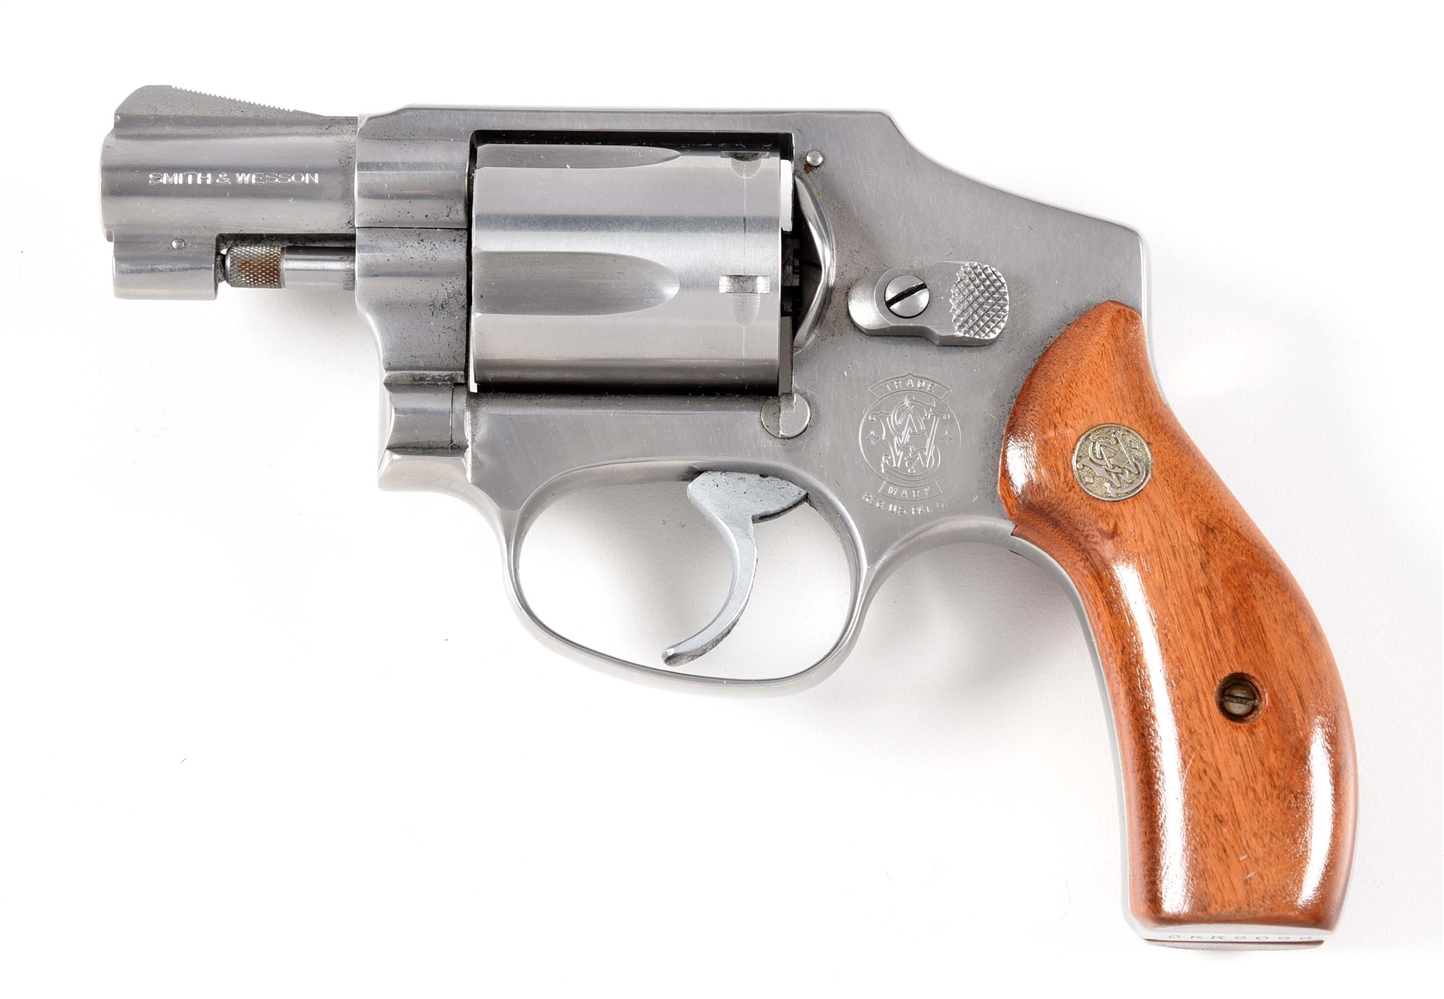 (M) SMITH & WESSON MODEL 640 DOUBLE ACTION REVOLVER.